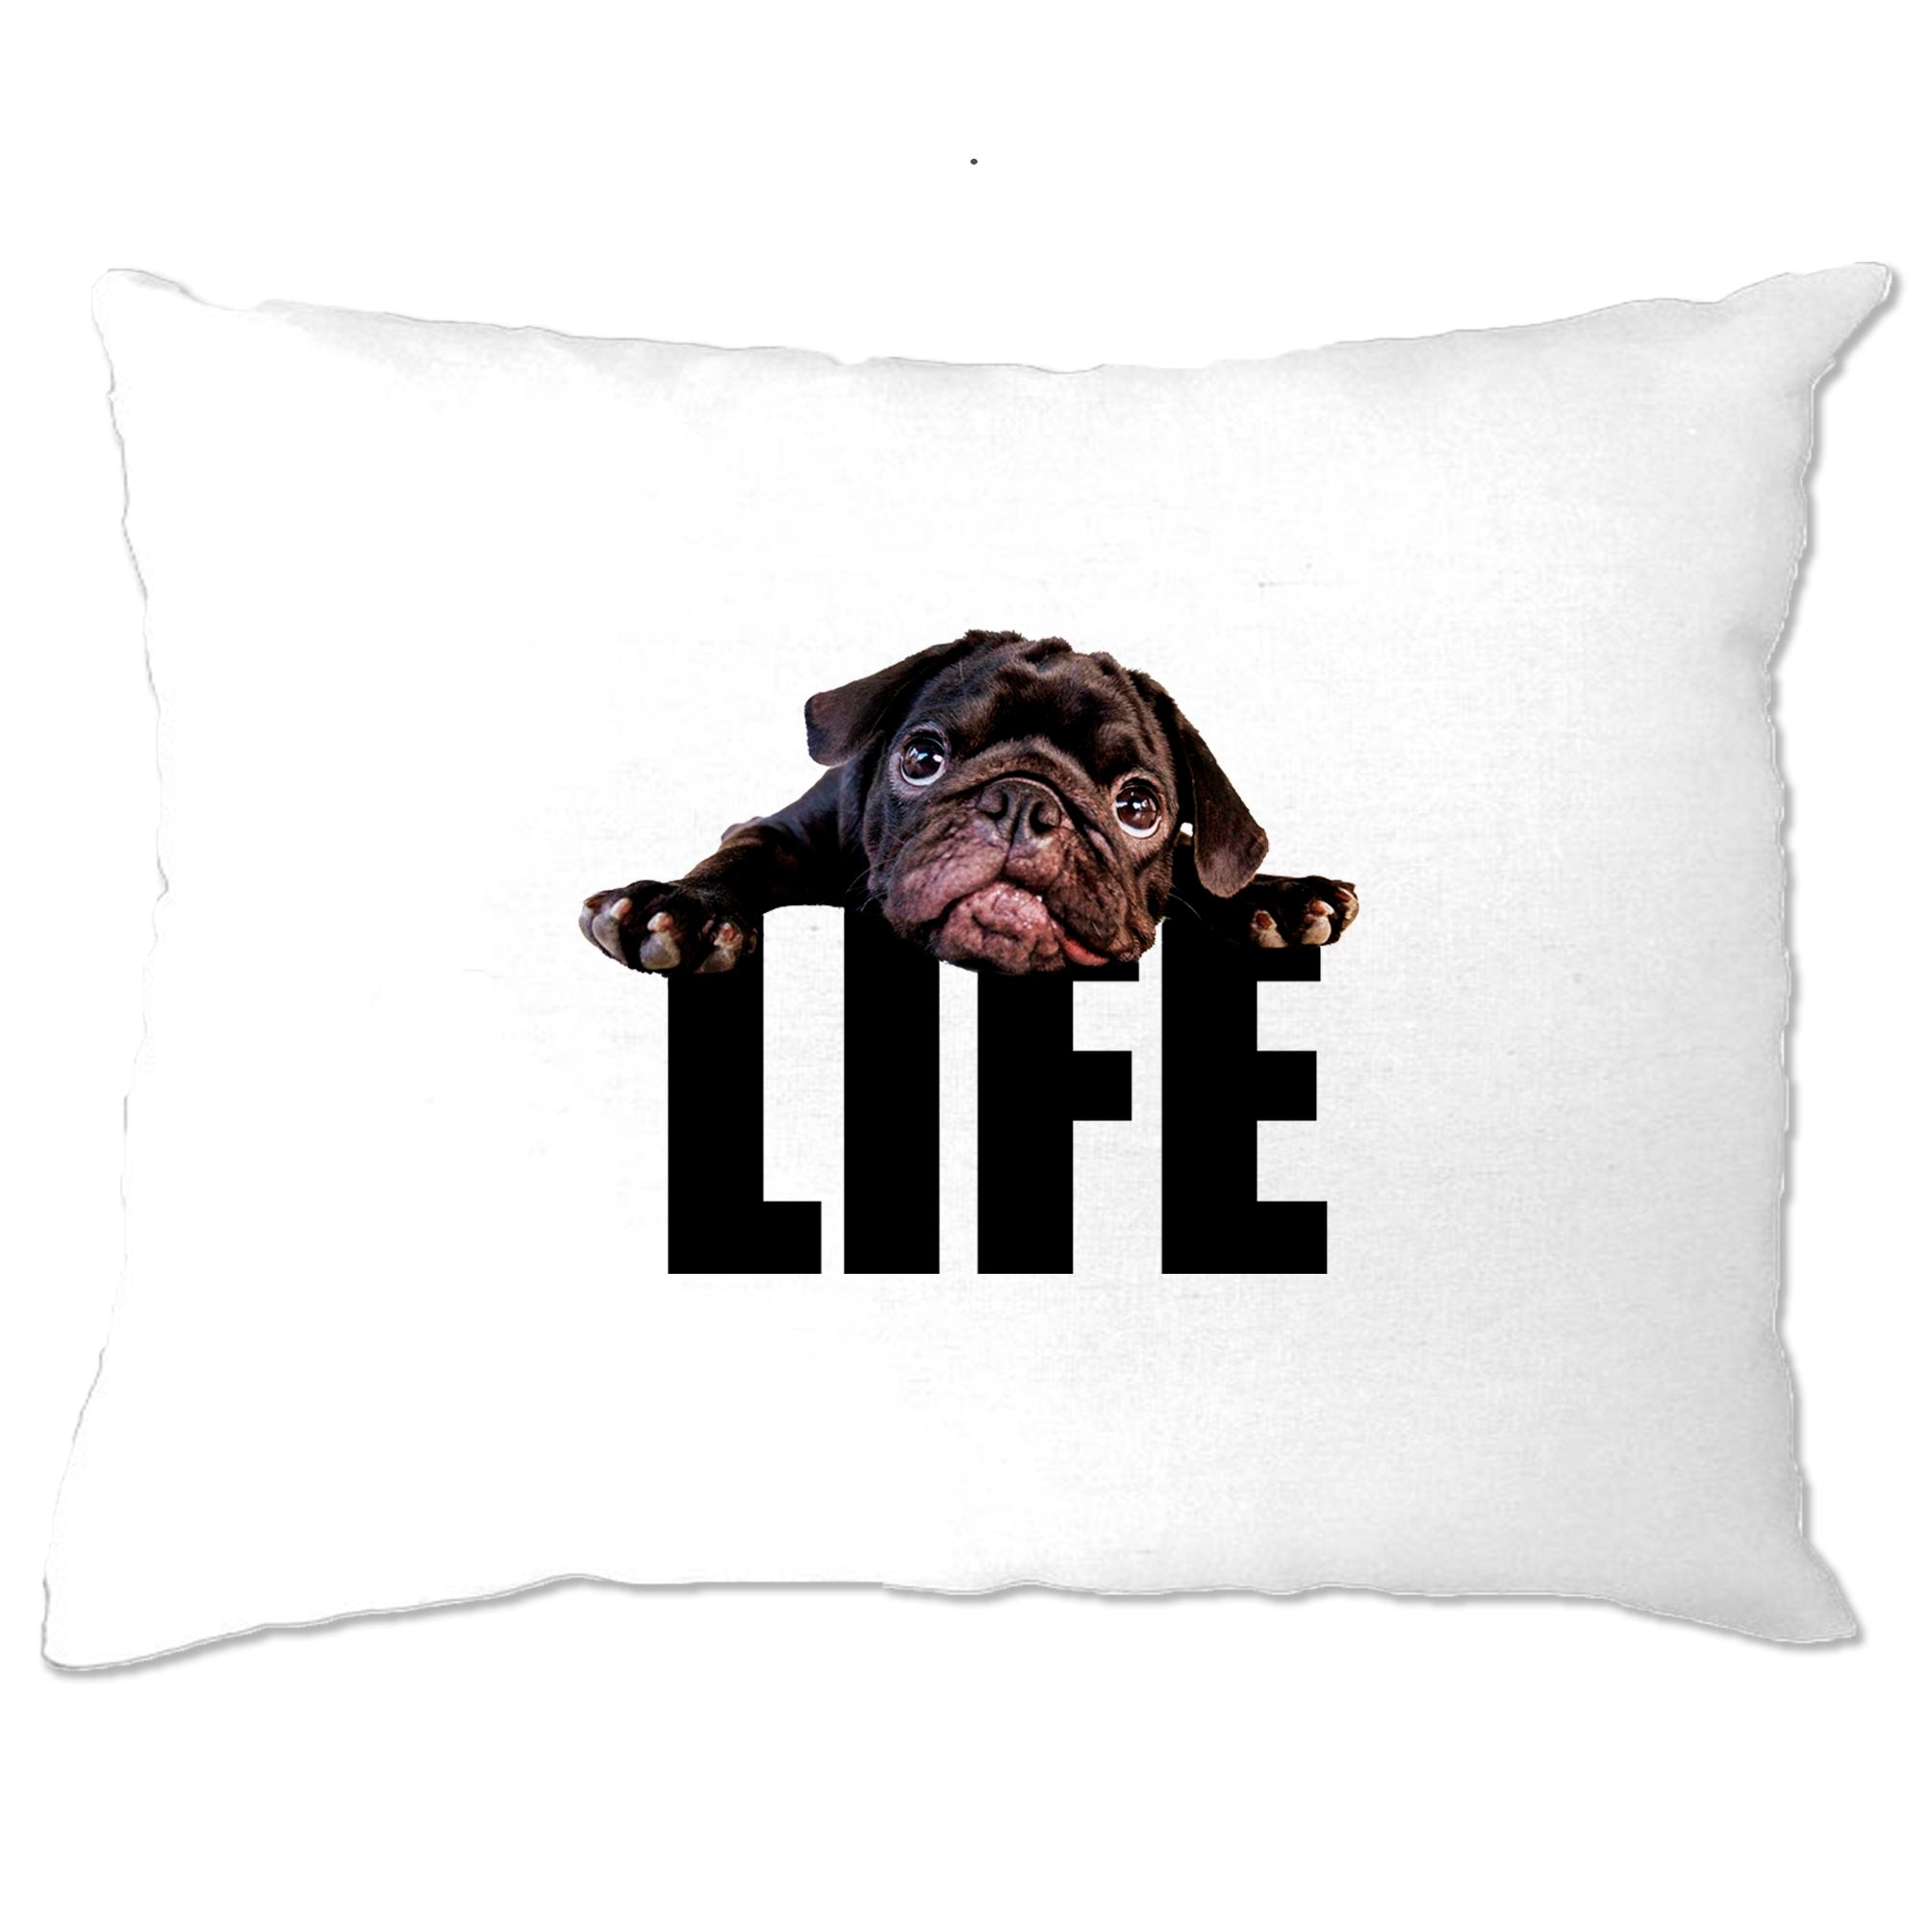 Cute Dog Pillow Case Pug Life Puppy